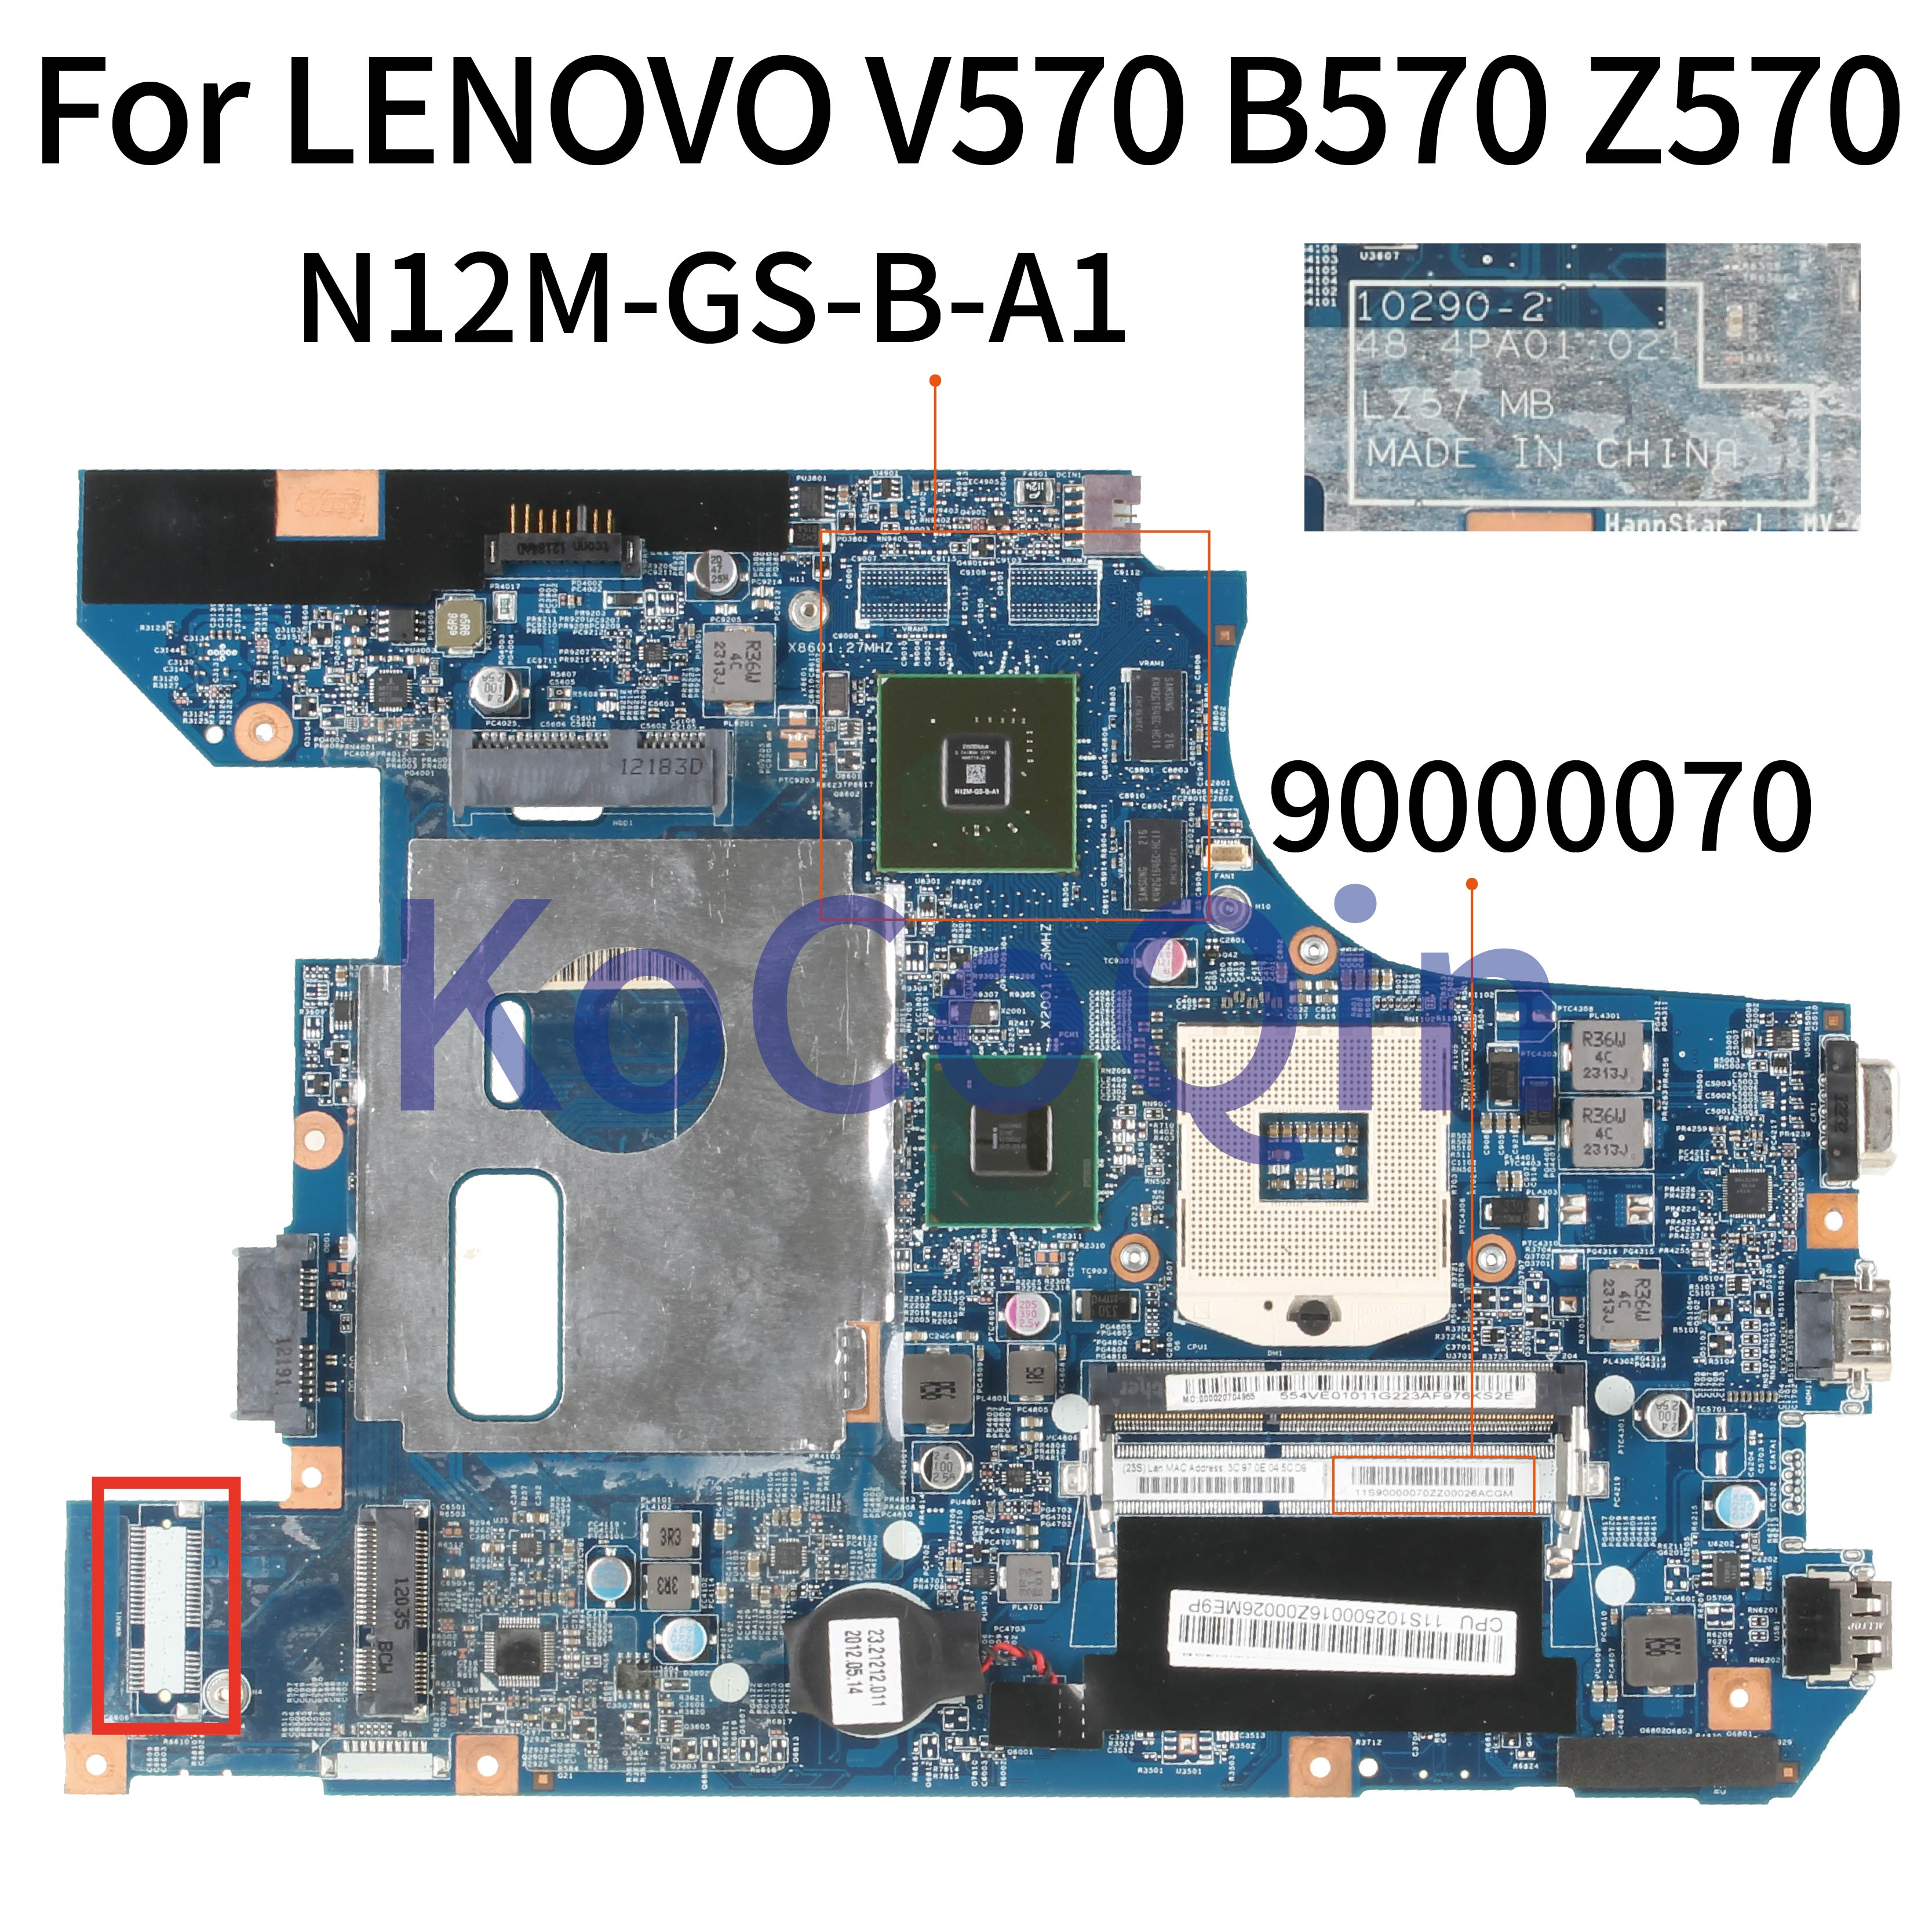 KoCoQin Laptop <font><b>motherboard</b></font> For <font><b>LENOVO</b></font> B570 B570E HM65 Mainboard 90000070 10290-2 48.4PA01.021 LZ57 N12M-GS-B-A1 image